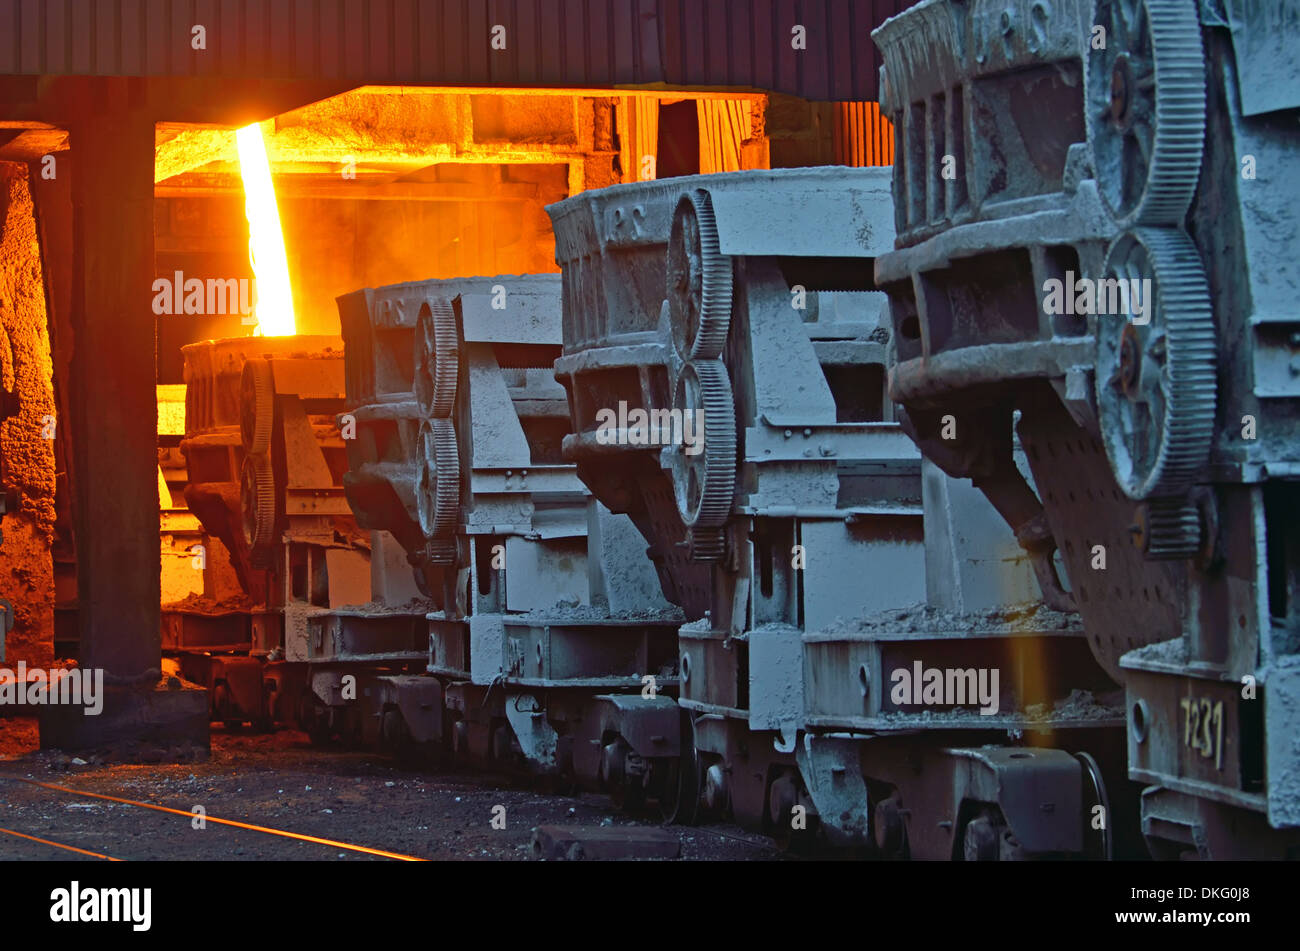 steel buckets to transport the molten metal inside of plant - Stock Image